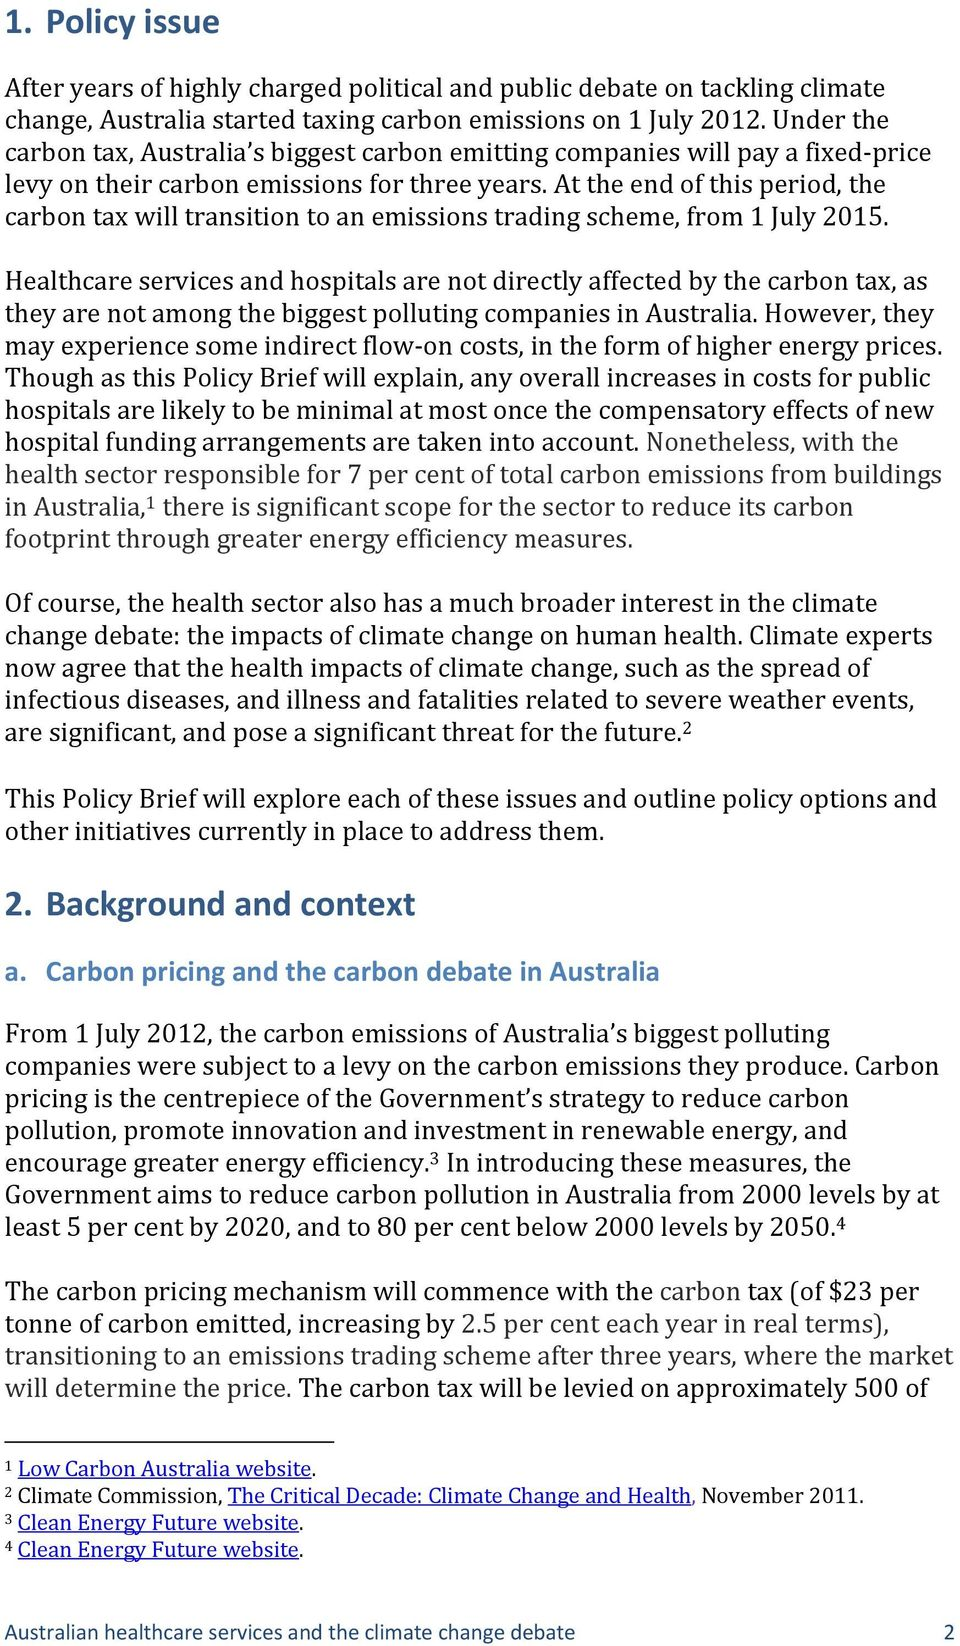 At the end of this period, the carbon tax will transition to an emissions trading scheme, from 1 July 2015.